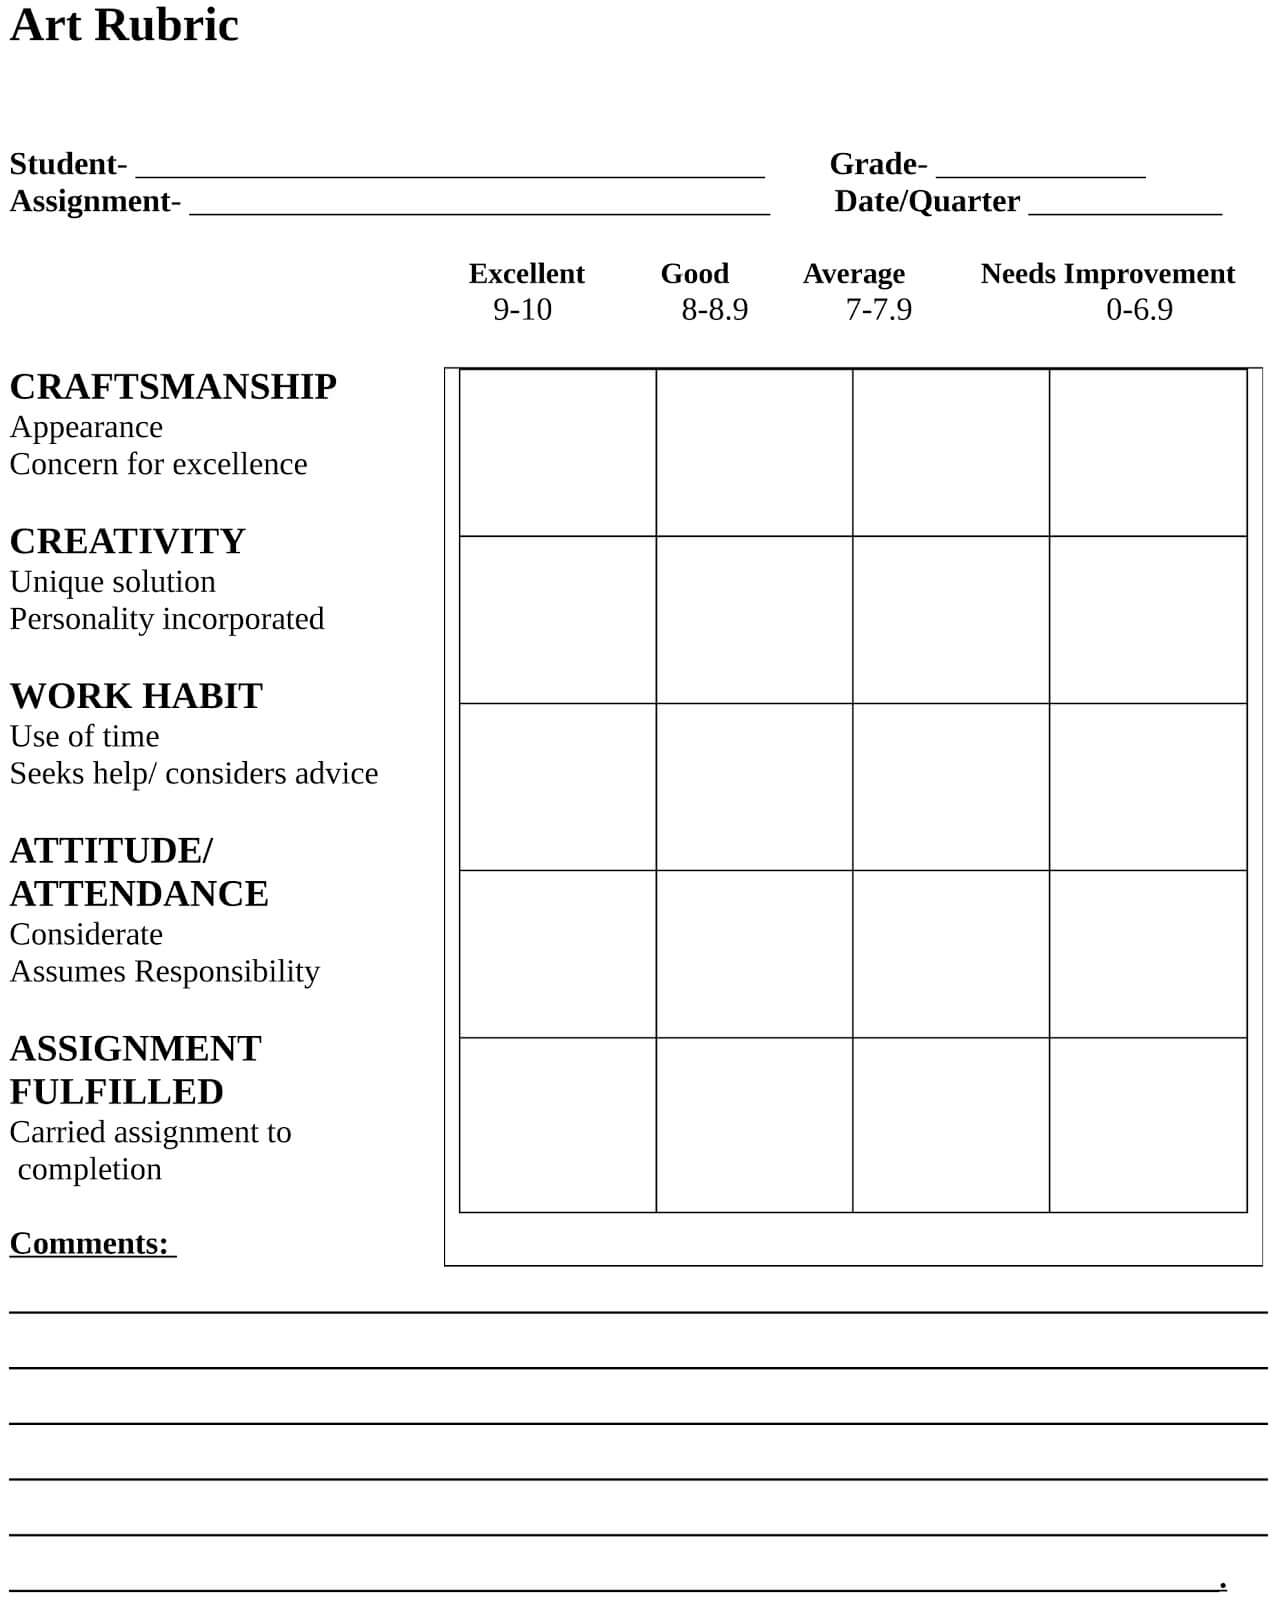 11 Images Of Humanities Rubric Template | Fodderchopper With Regard To Blank Rubric Template